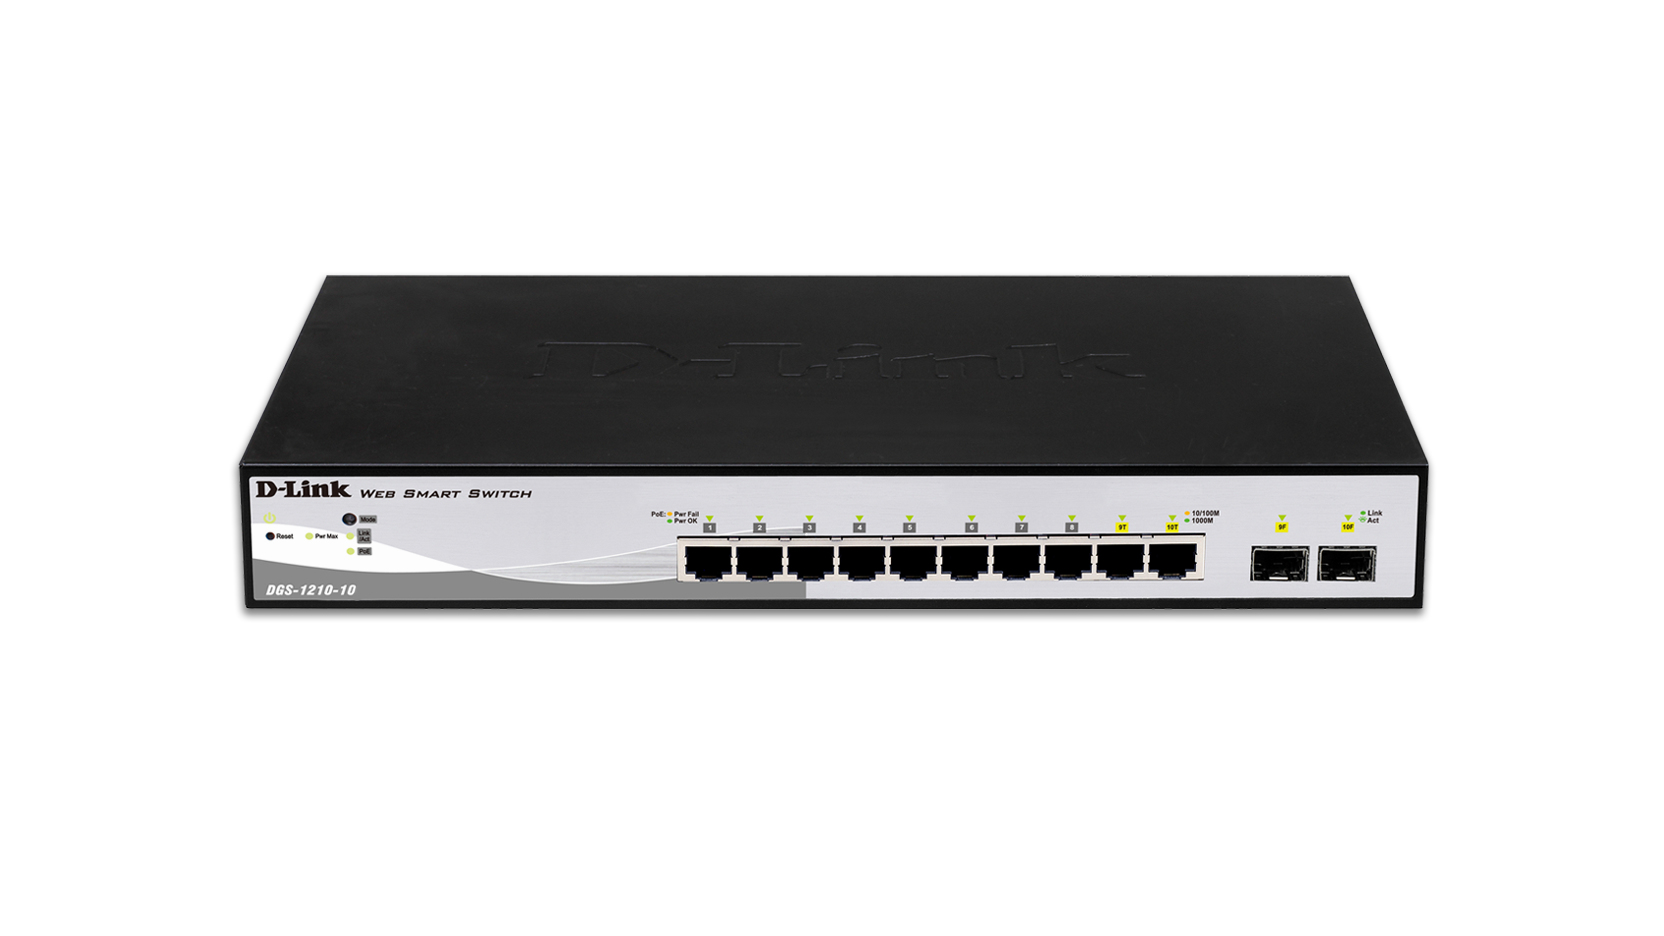 D-Link DGS-1210-10 network switch